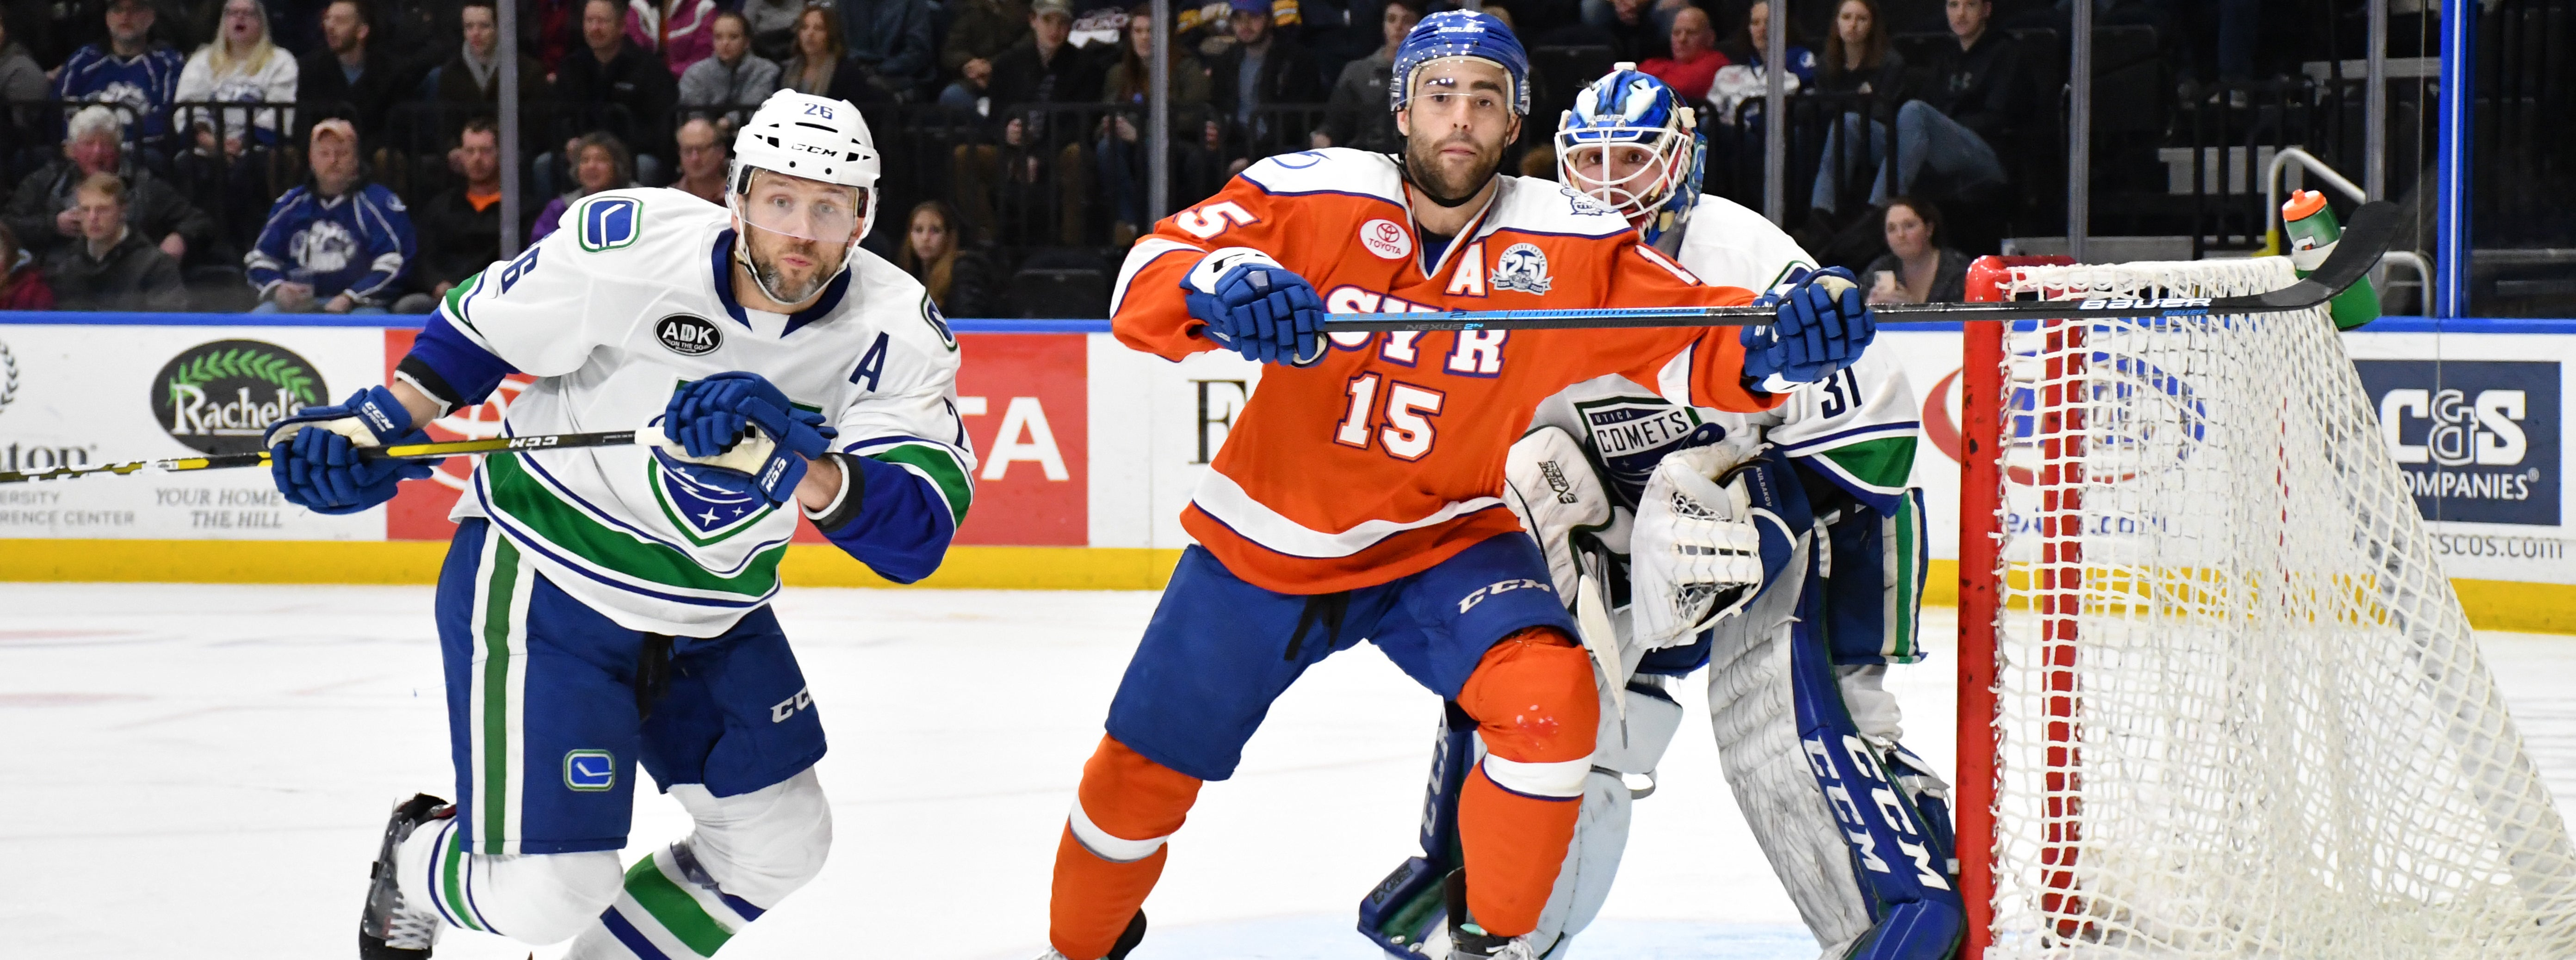 COMETS BESTED BY CRUNCH